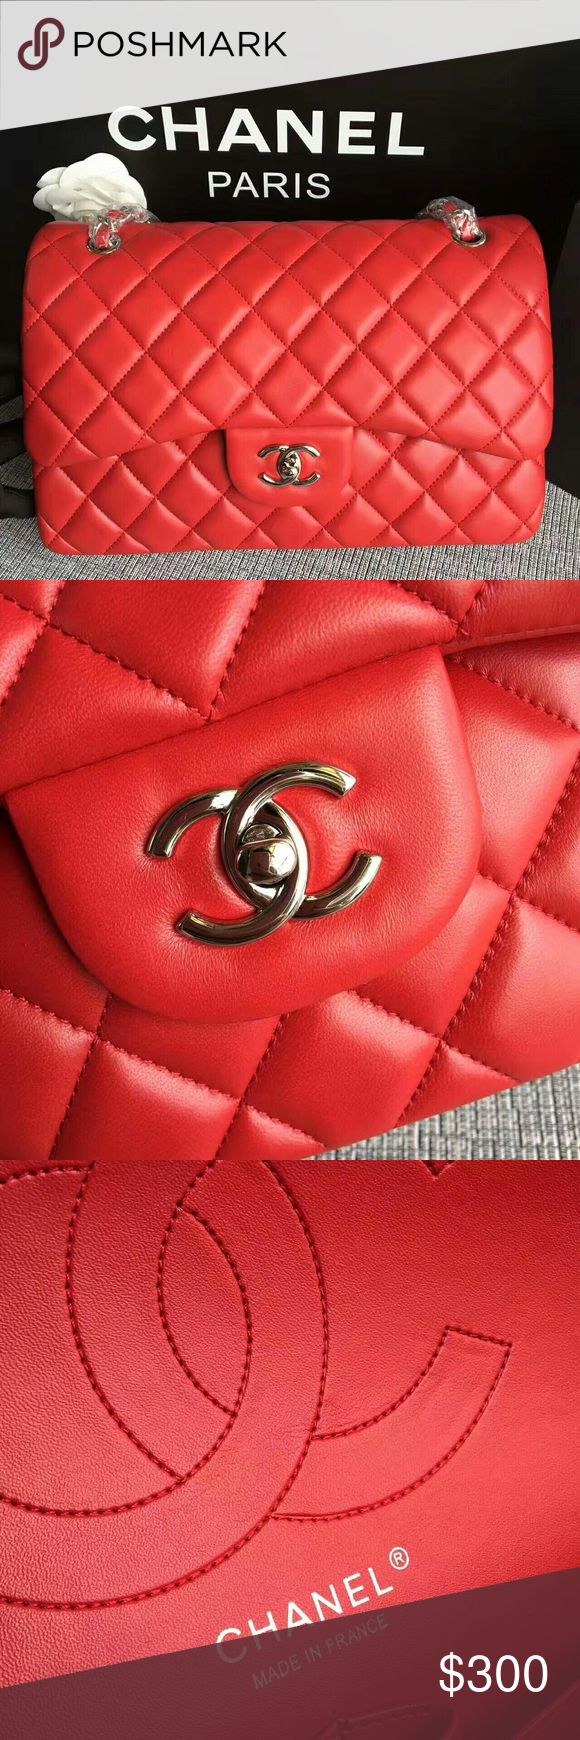 Chanel jumbo flap bag BRAND NEW  COMES WITH BOX DUST BAG AND AUTHENTICITY CARD  NOT AUTHENTIIIIIIIIC  REAL LEATHER  NOT SOLD THRU PM  ONLY SOLD WITH G.W. OR ZELLE FOR PURCHASE OR SERIOUS INQUIRIES  CONTACT ME  luxurybaggal202@gmail.com CHANEL Bags